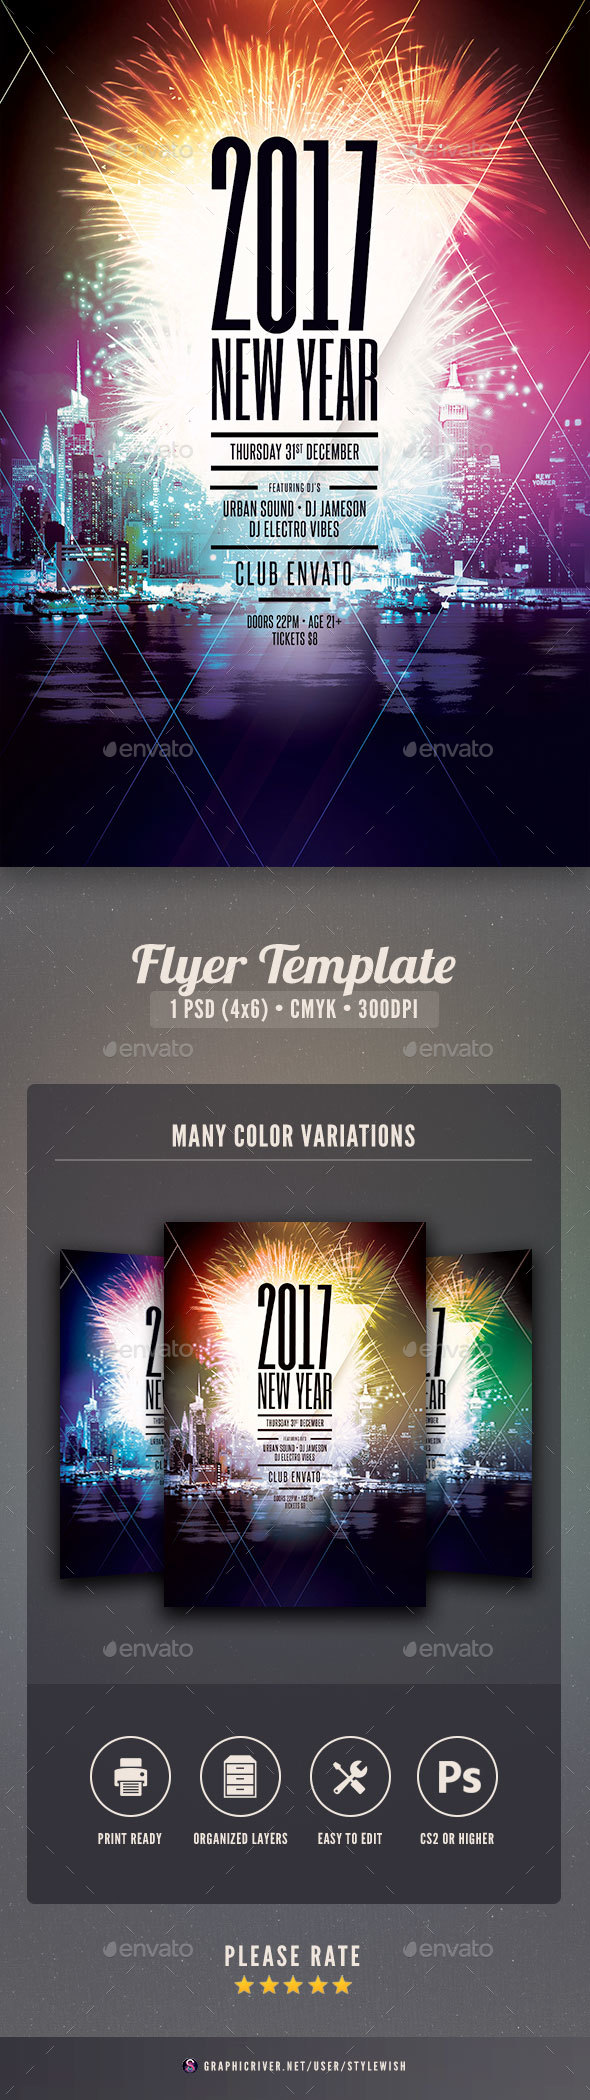 2018 New Year Flyer Template | Flyers, Flyer template and Club parties